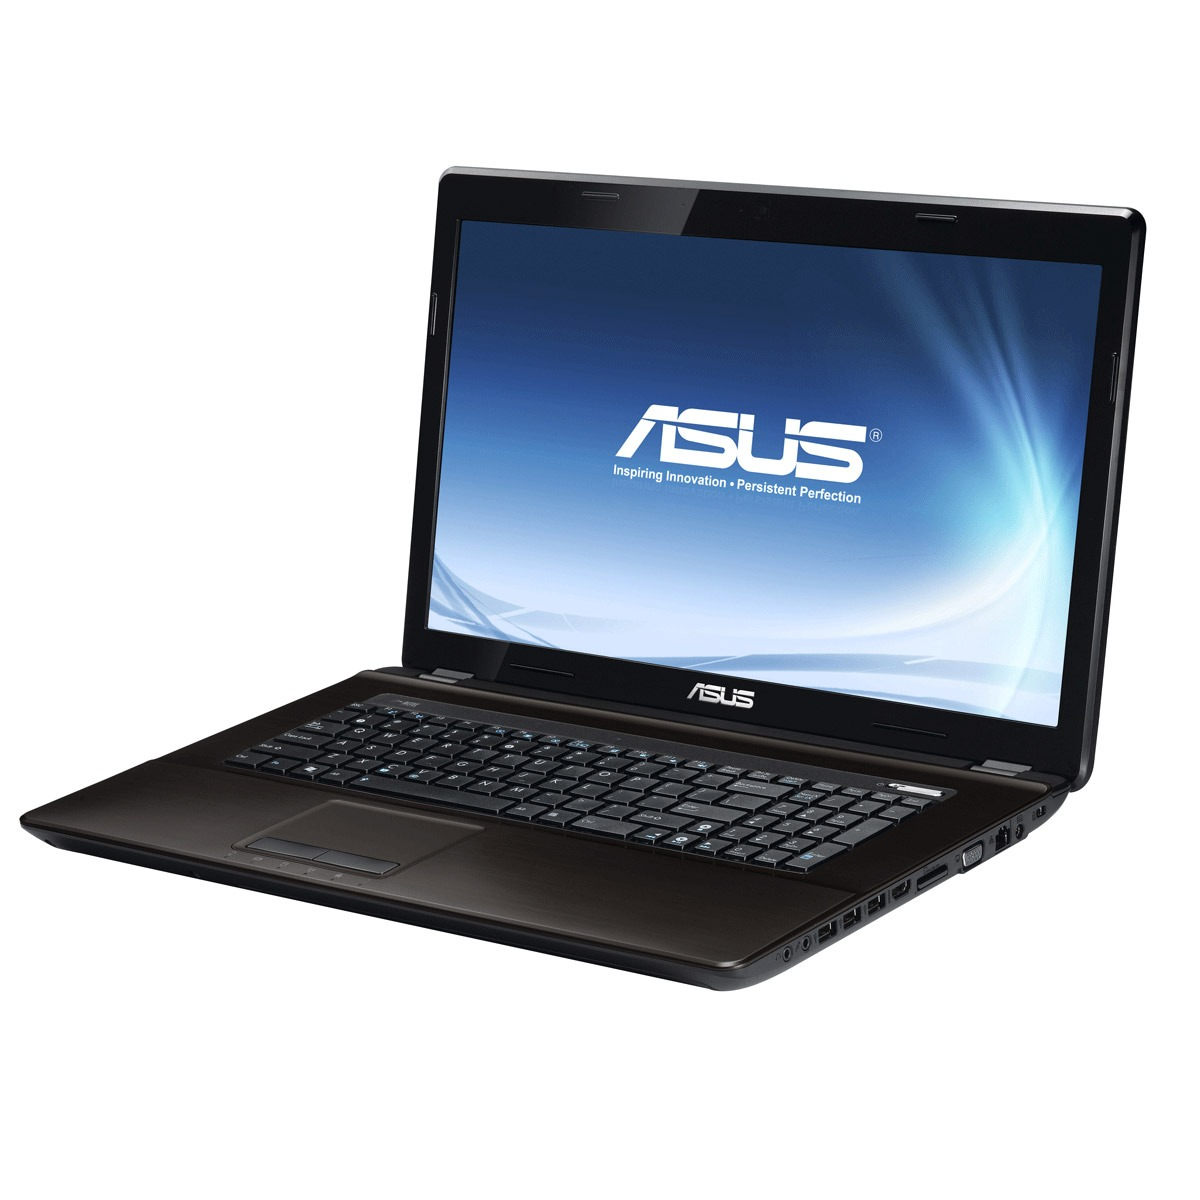 "PC portable ASUS K73E-TY304V Intel Pentium B960 4 Go 320 Go 17.3"" LED Intel HD Graphics Graveur DVD Wi-Fi N Webcam Windows 7 Premium 64 bits (garantie constructeur 2 ans)"